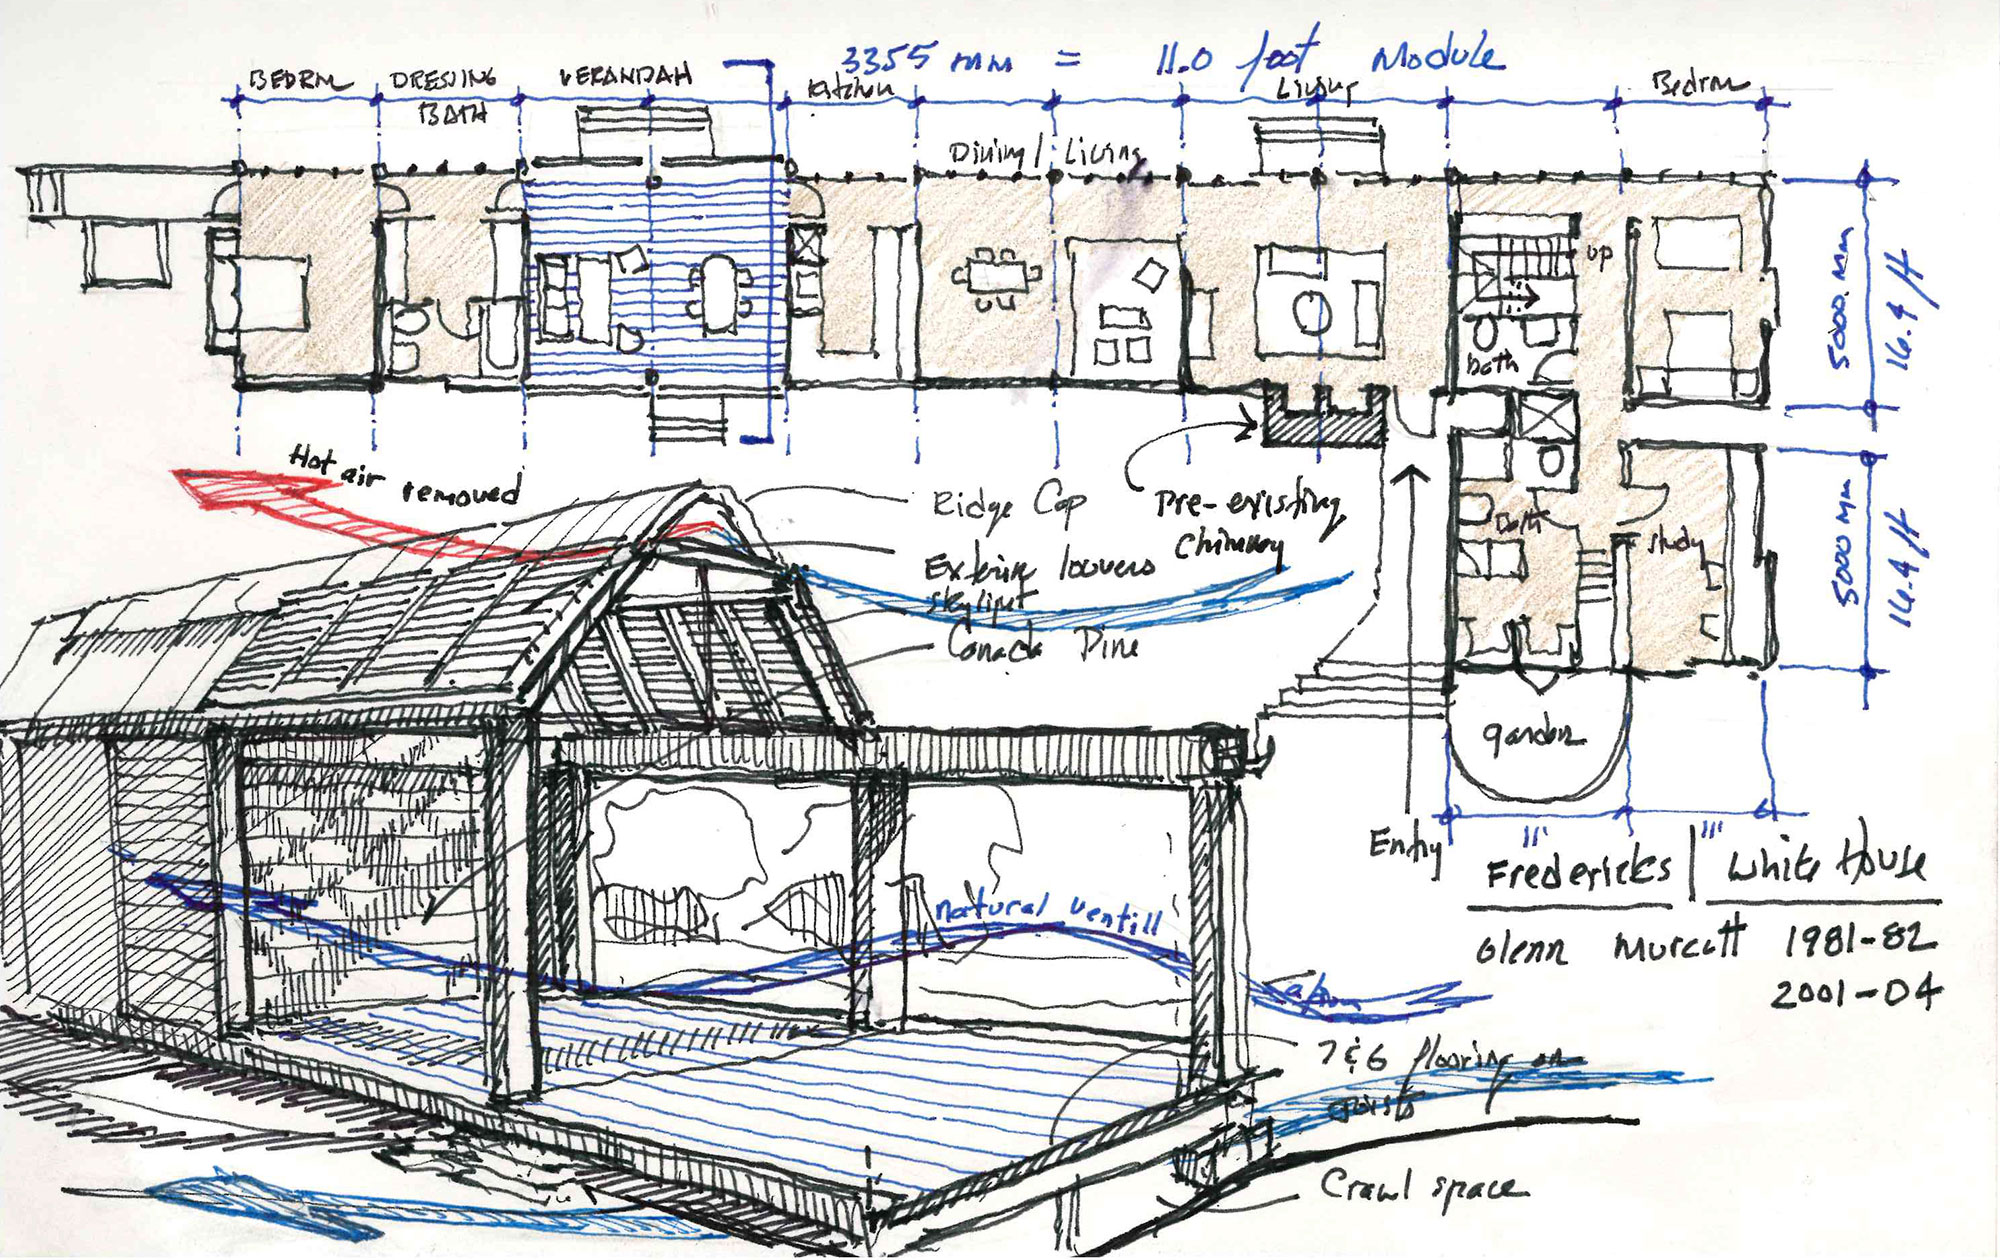 hand drawing sketch floor plan and diagram